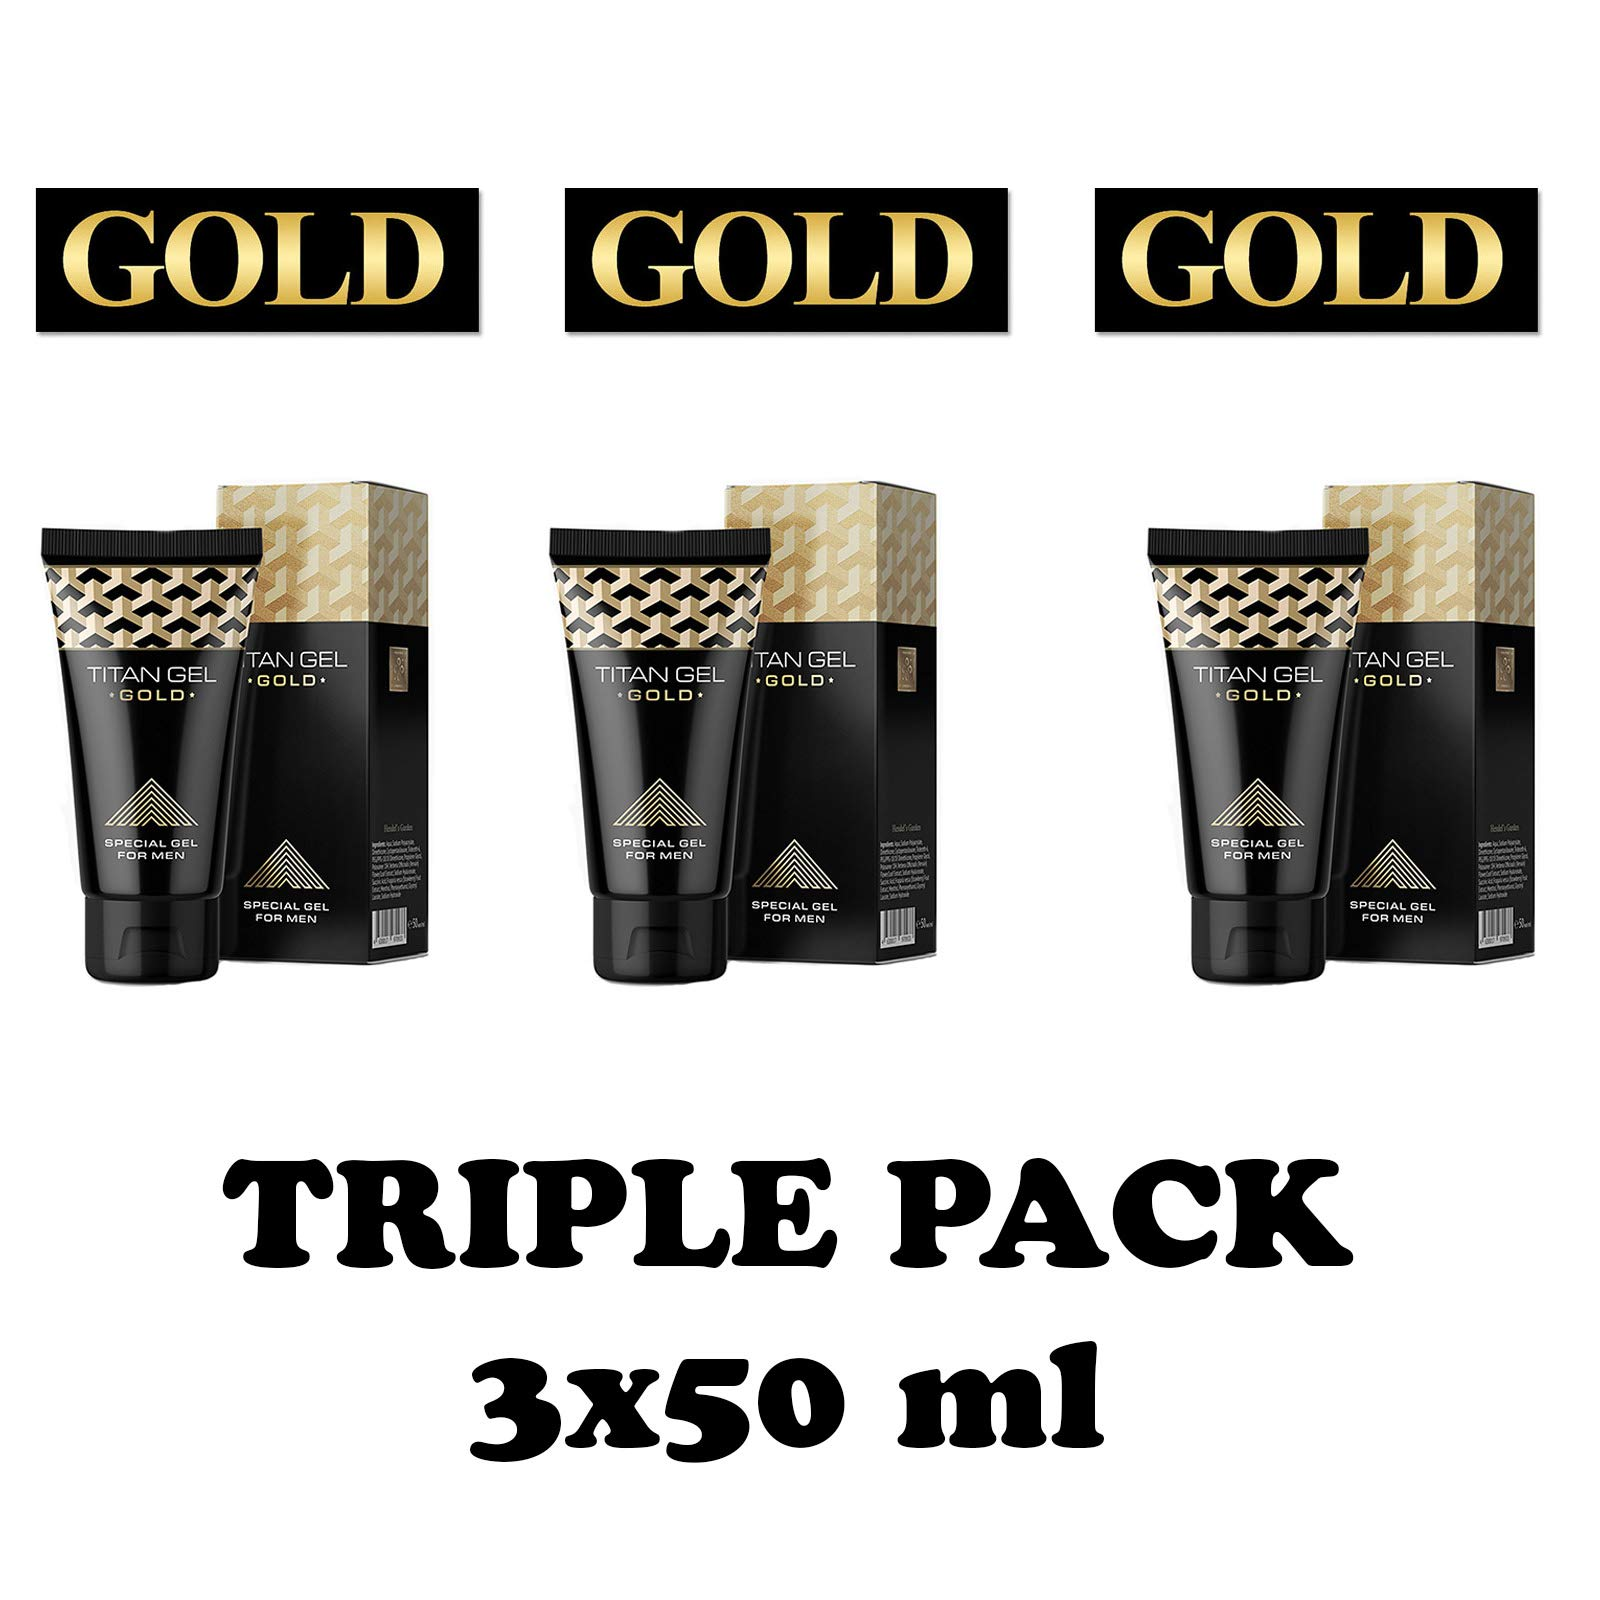 3Pcs New Original Titan Gel Gold Penis Enlargement Cream Retarder Intim Gel Erection Cream for Male Potency Increase Sex Time by yang-hengtt